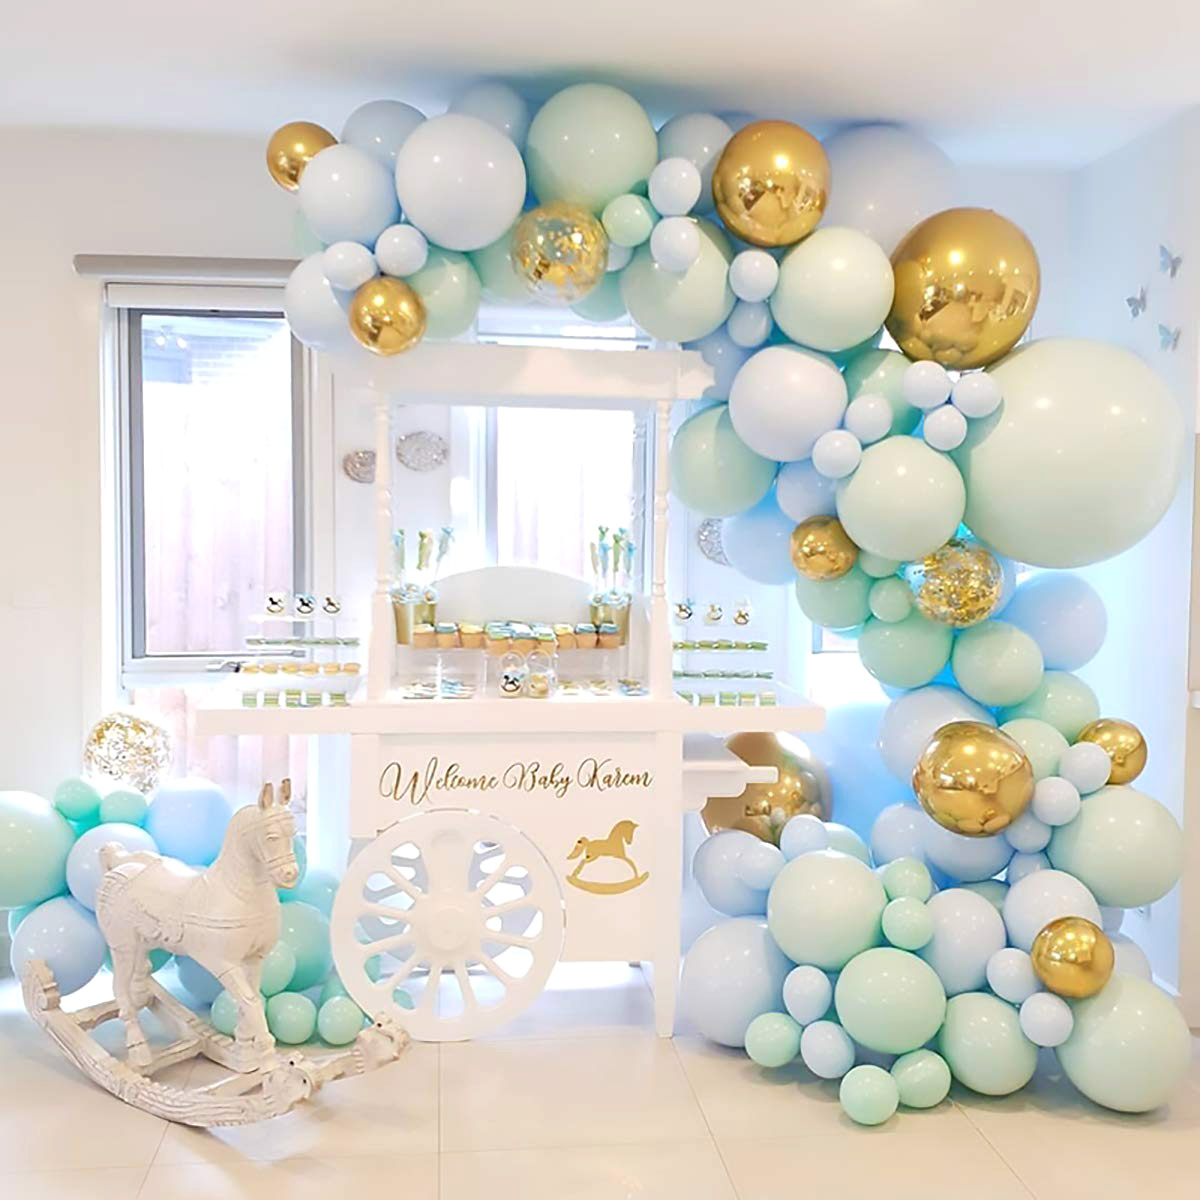 Pastel Green And Blue Balloon Garland Arch Diy Kit For Boy S Birthday And Baby Shower Decorations Balloon Passion